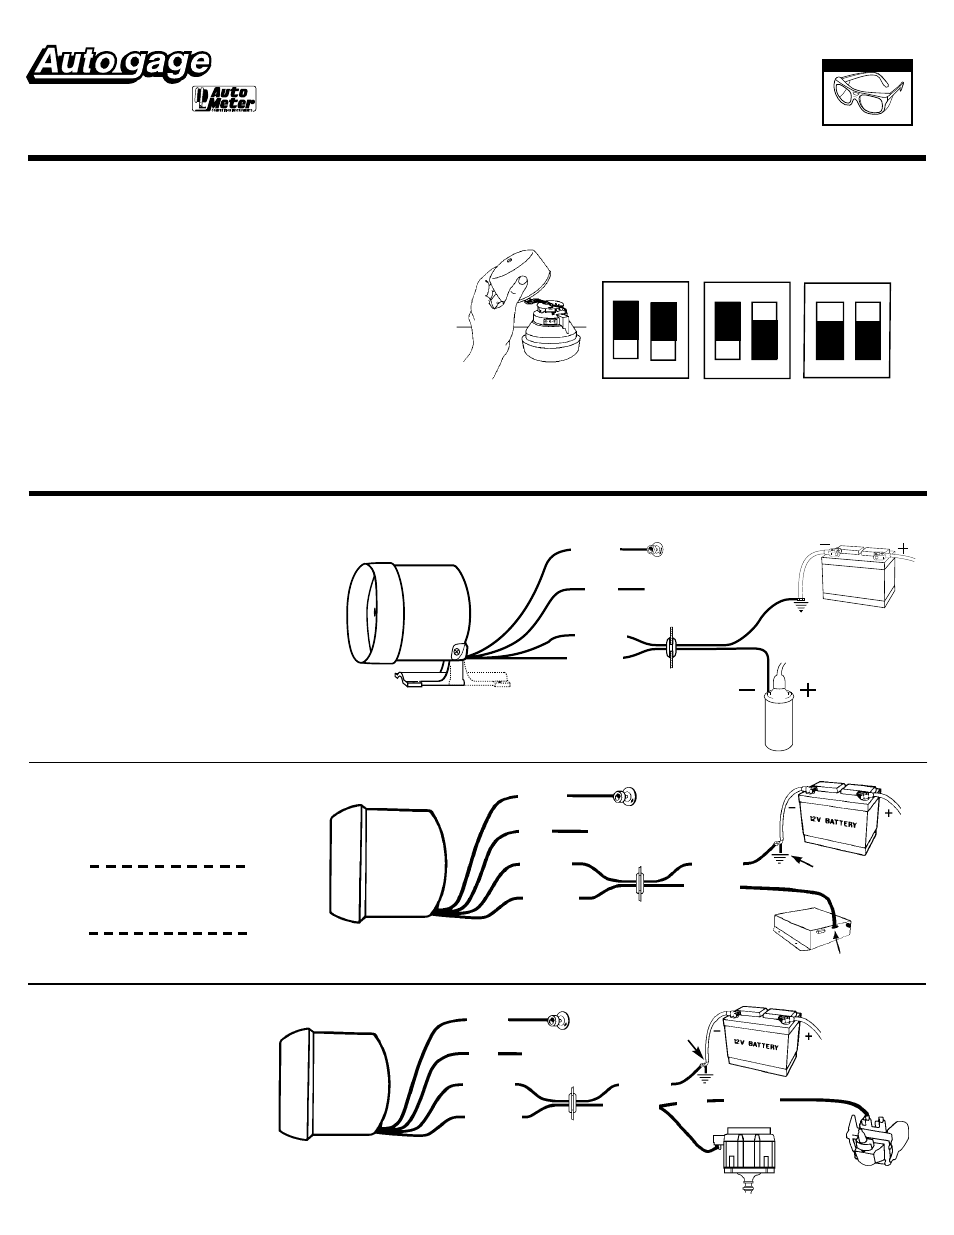 auto meter wiring diagram auto meter 2304 user manual 2 pages also for 2301  2303  2300 autometer amp gauge wiring diagram auto meter 2304 user manual 2 pages